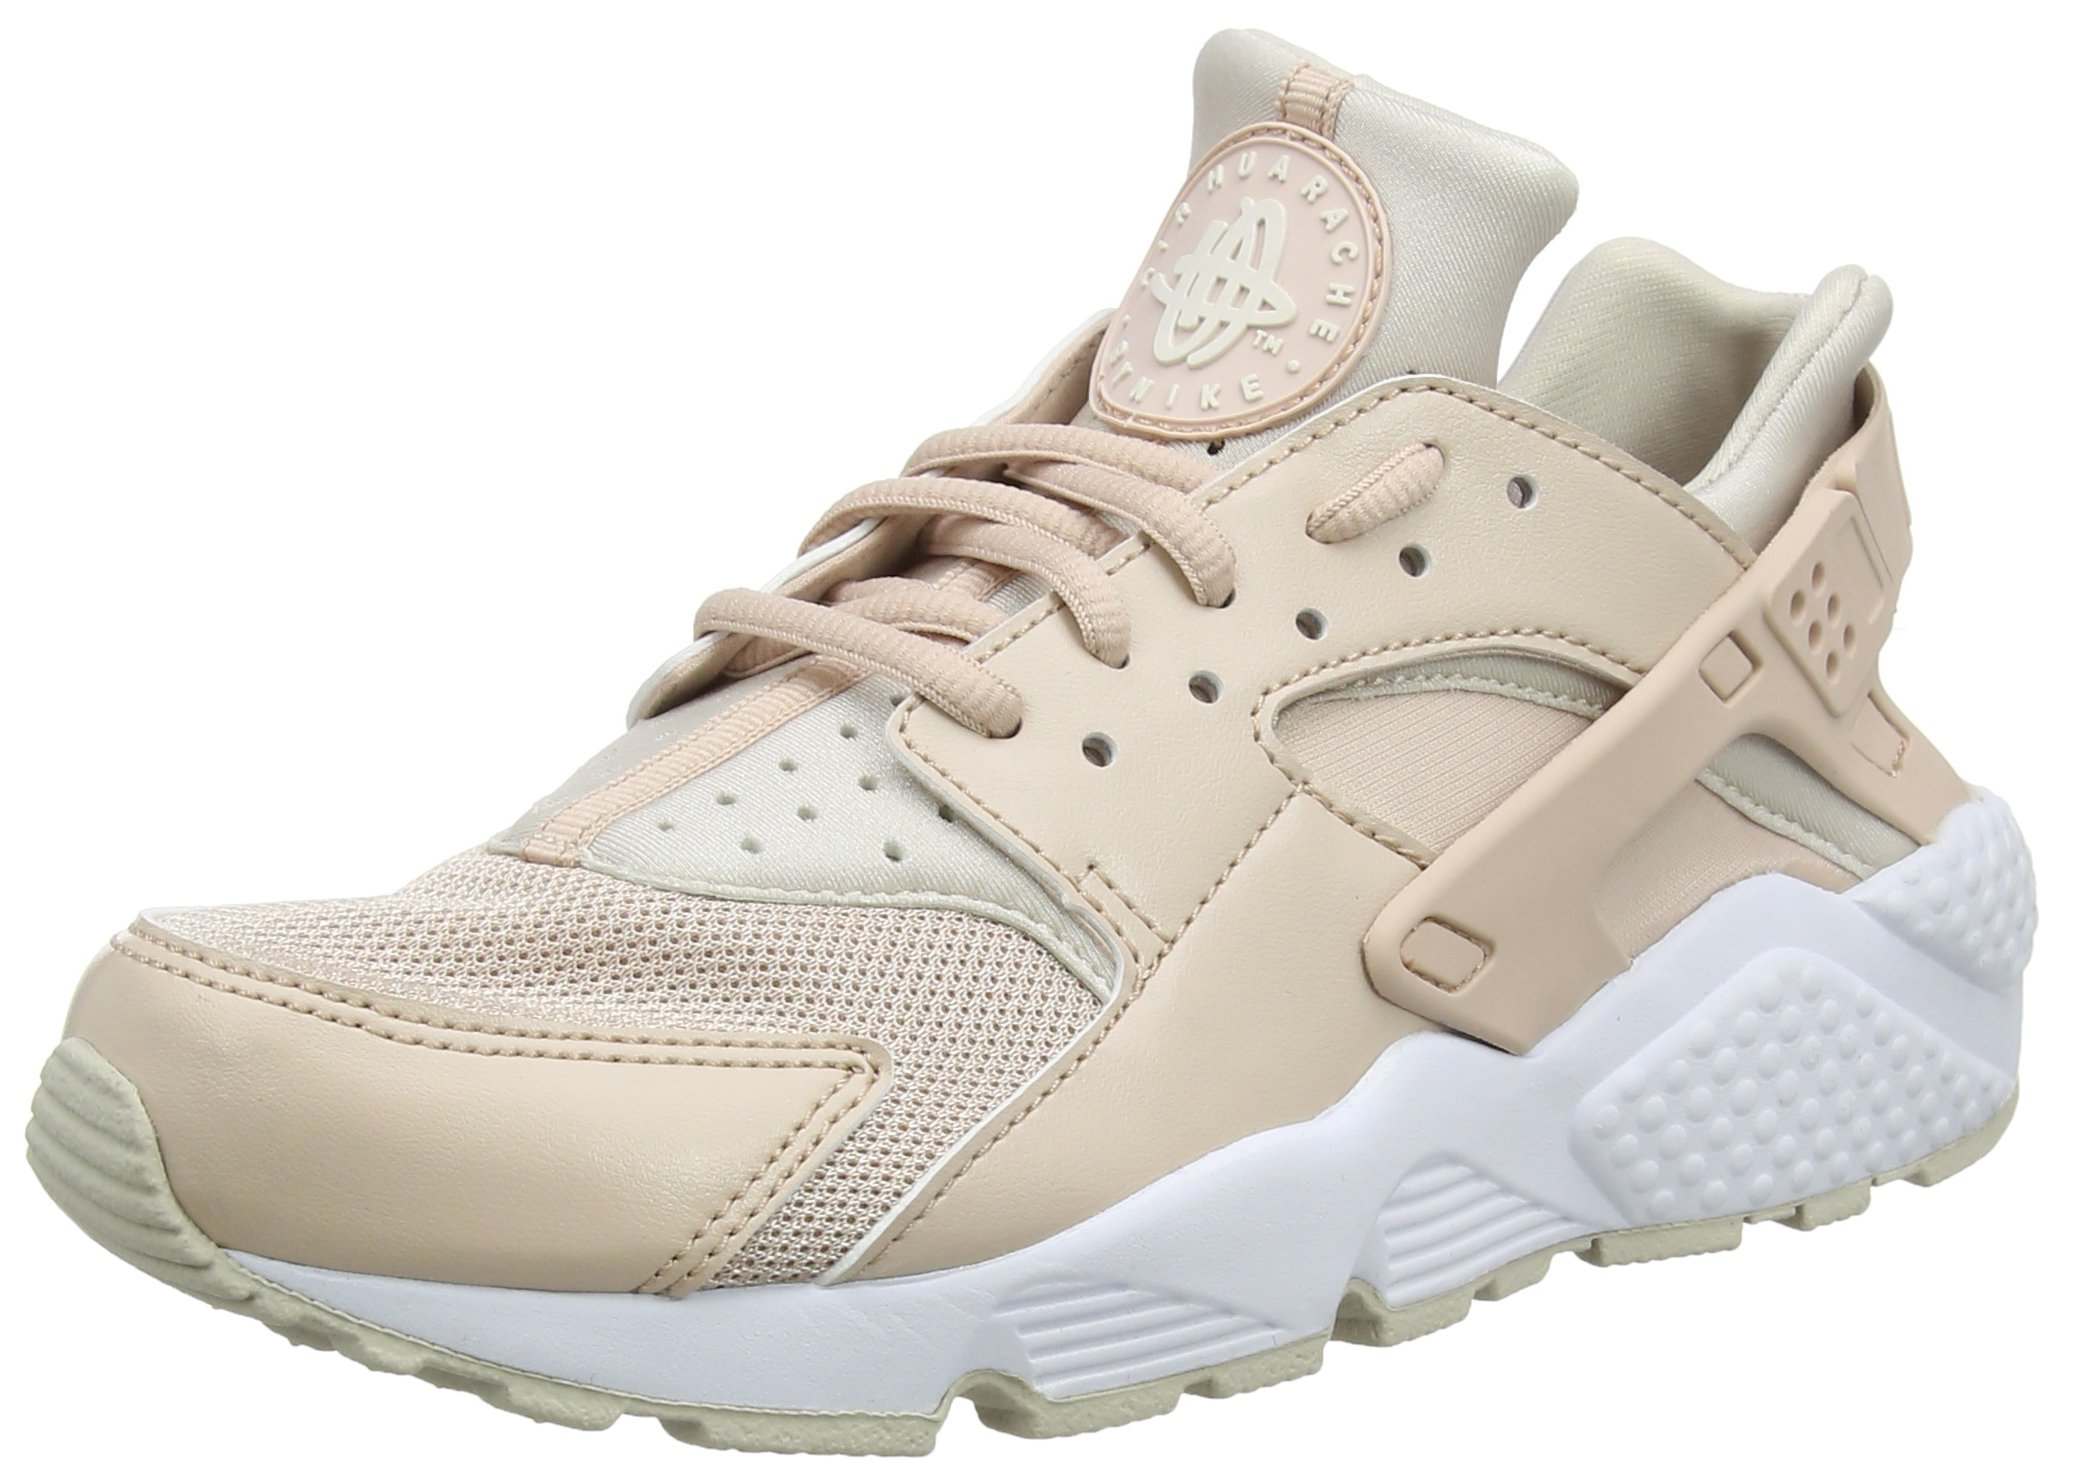 b9d5c5cec49e Galleon - NIKE Women s Air Huarache Run